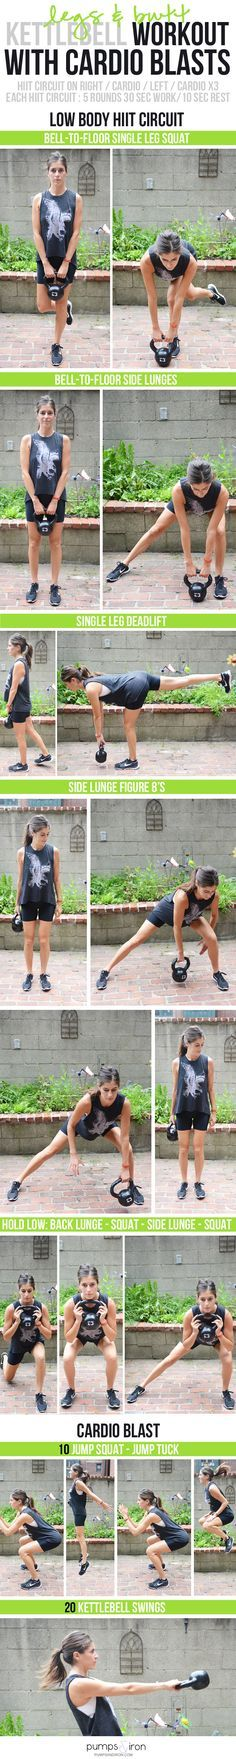 Butt & Legs Kettlebell Workout with Cardio - awesome lower body workout (and great for strengthening your back!) #GorillaGlass #sponsored